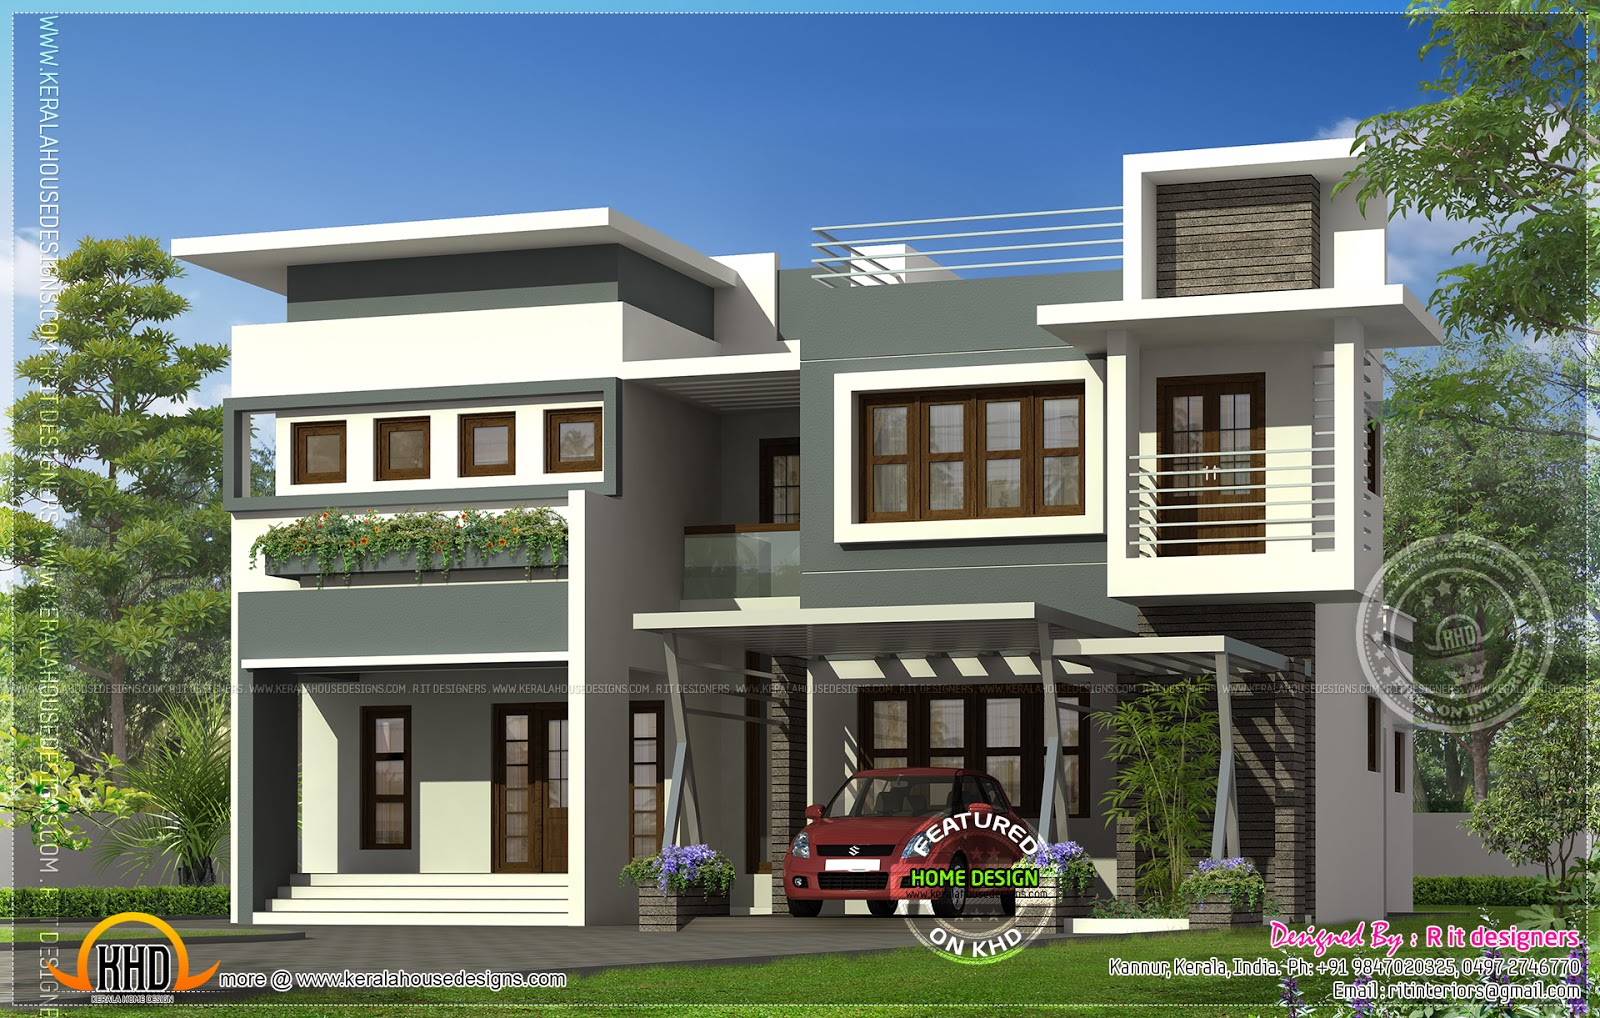 Modern contemporary residence design kerala home design and floor plans - Contemporary home design ...